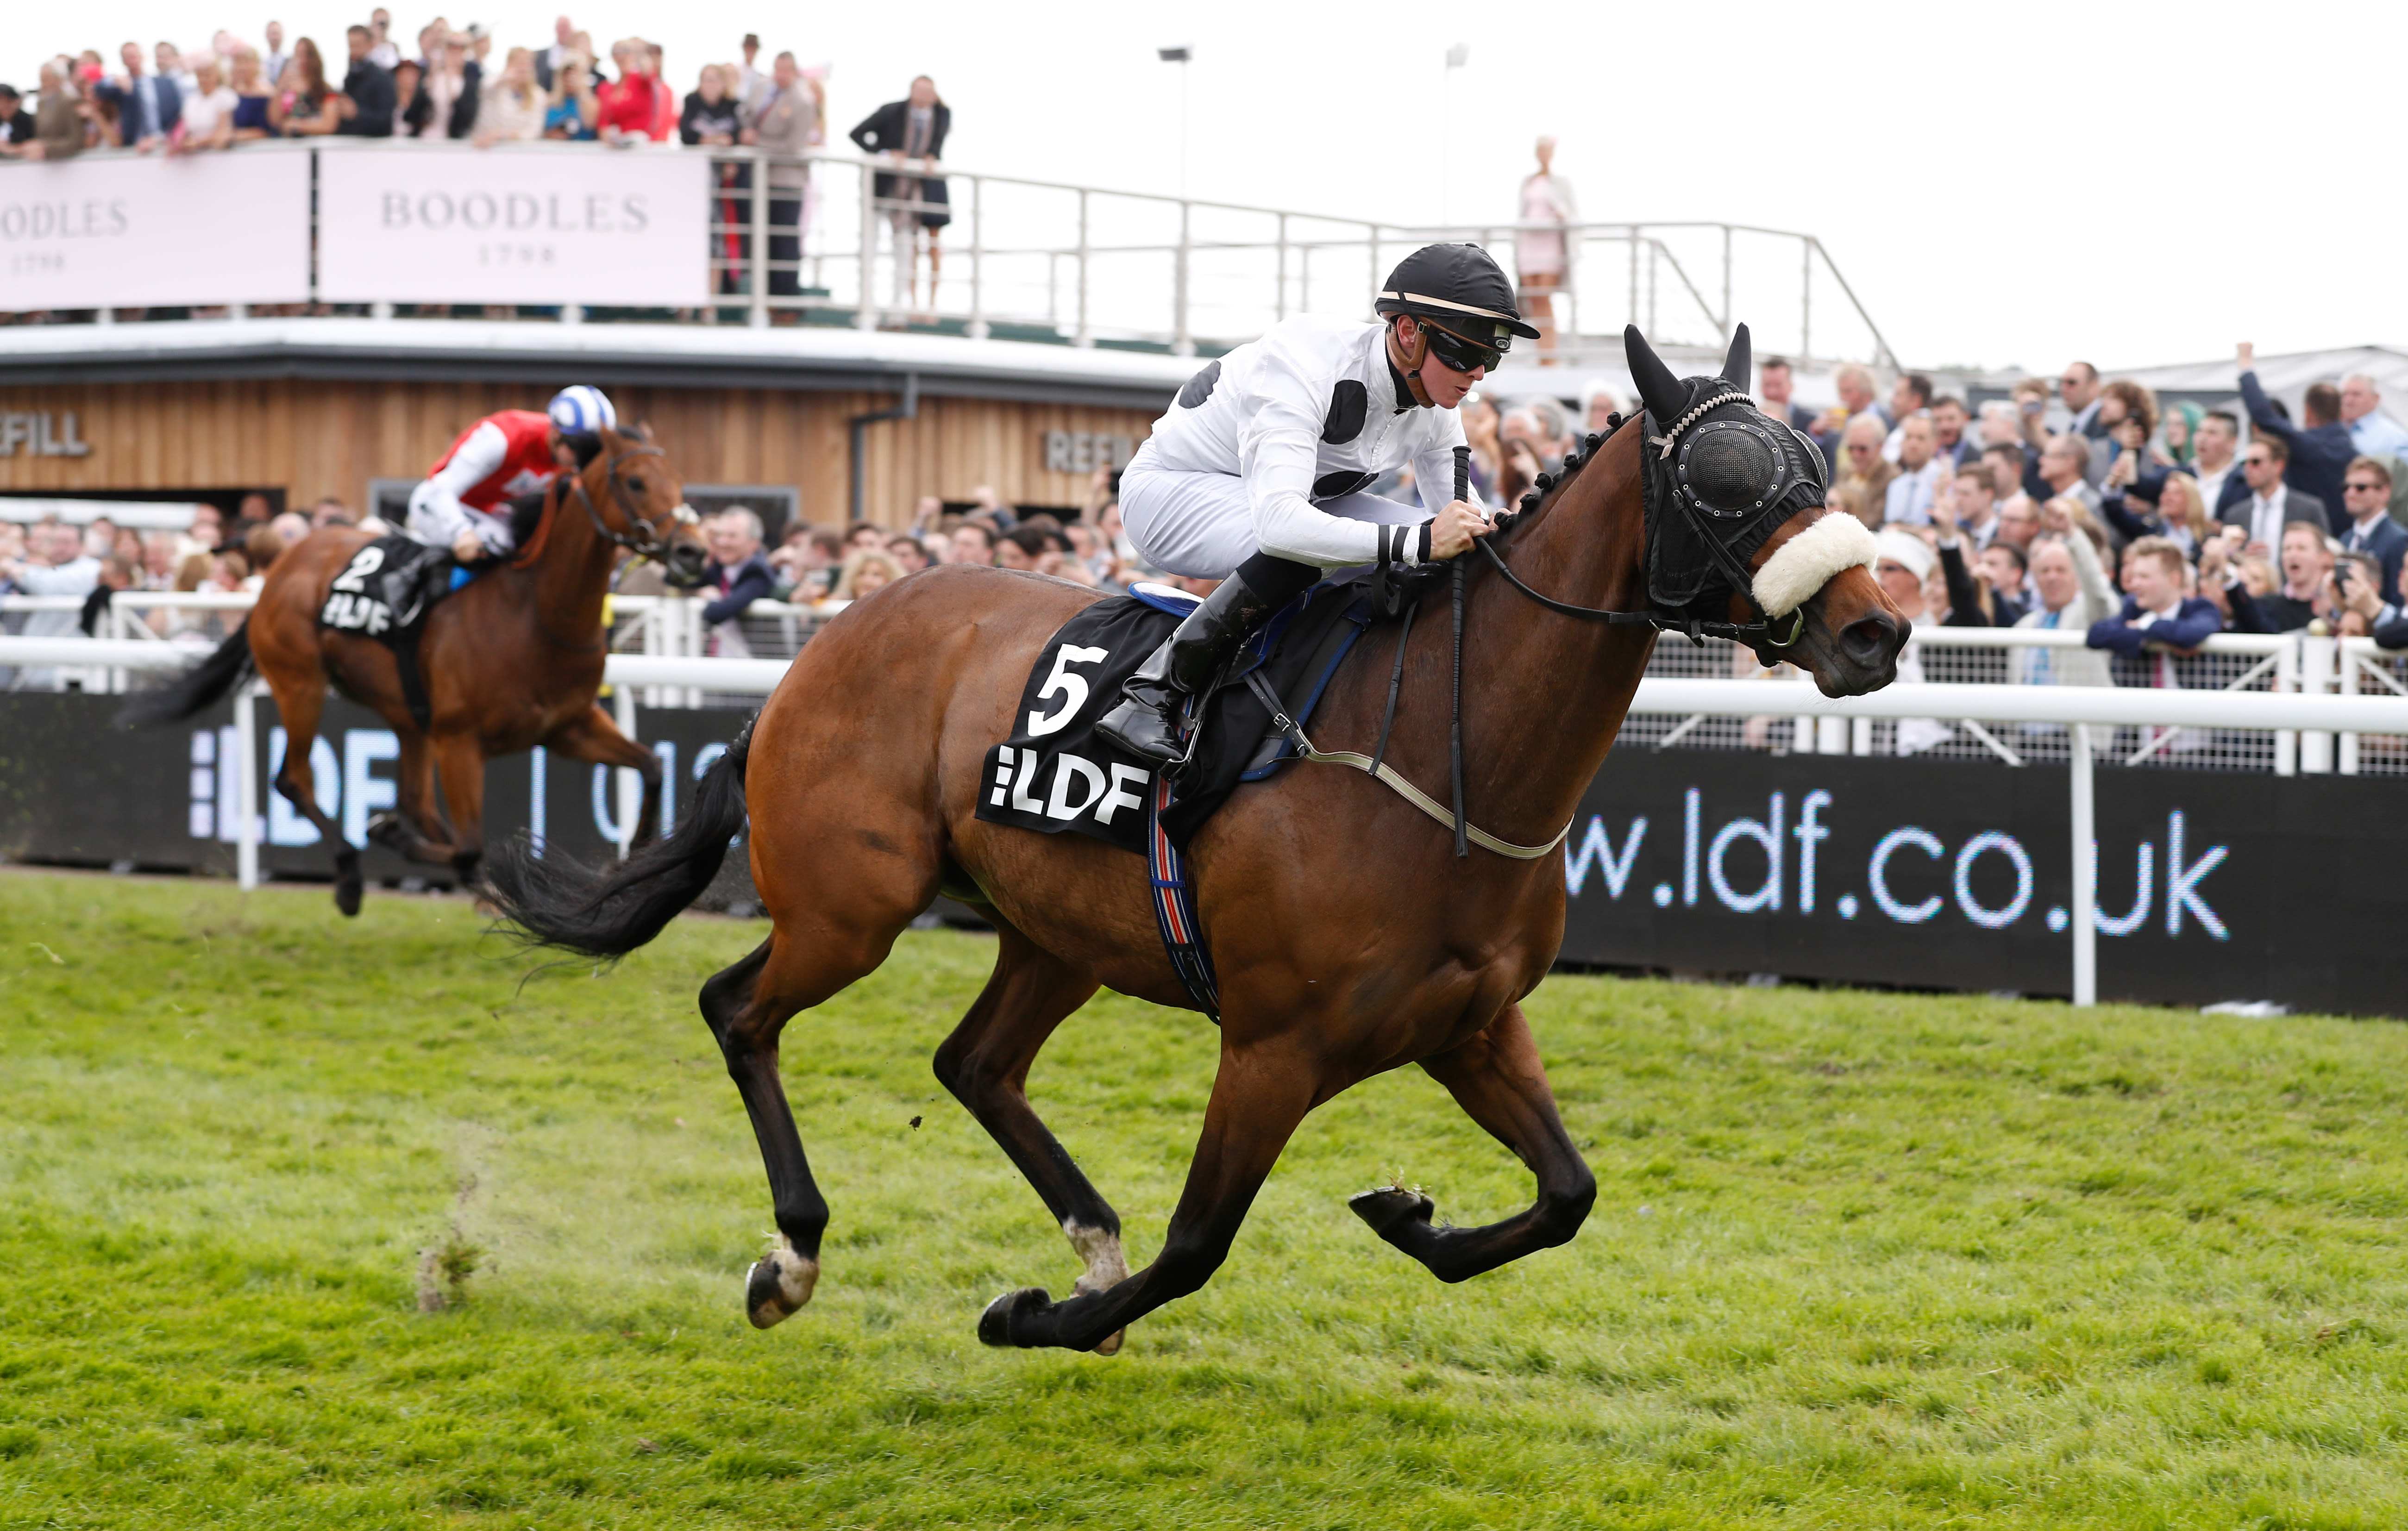 Judicial is on course to run at Newbury this weekend